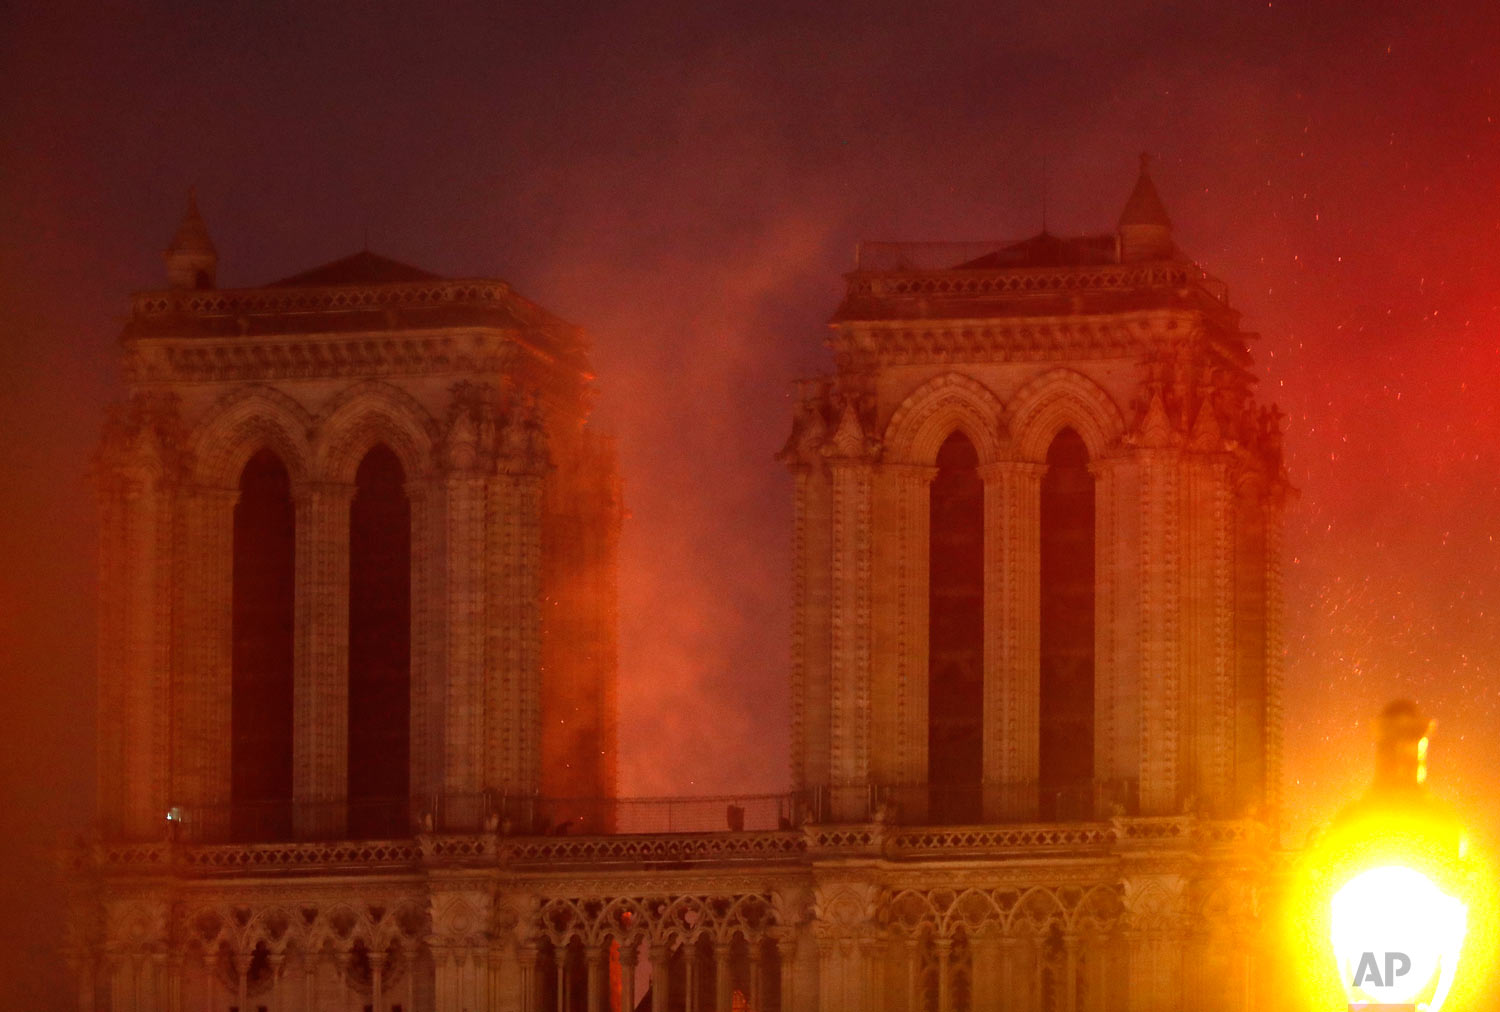 Flames illuminate the night sky as Notre Dame Cathedral burns in Paris, April 15, 2019. (AP Photo/Thibault Camus)